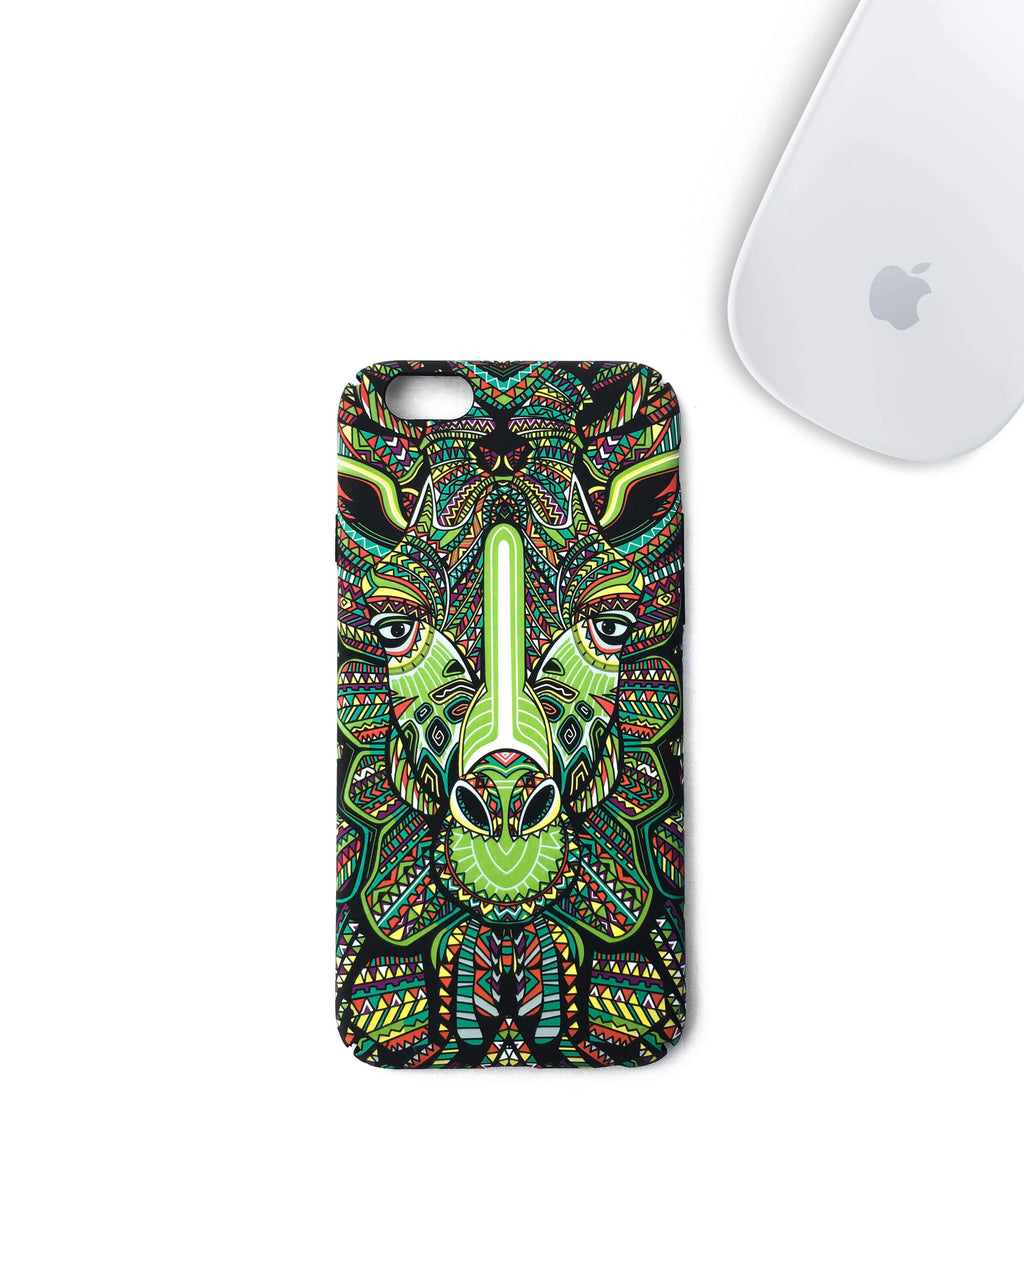 Giraffe iPhone Case (Glows in the Dark) - Cloud Accessories, LLC